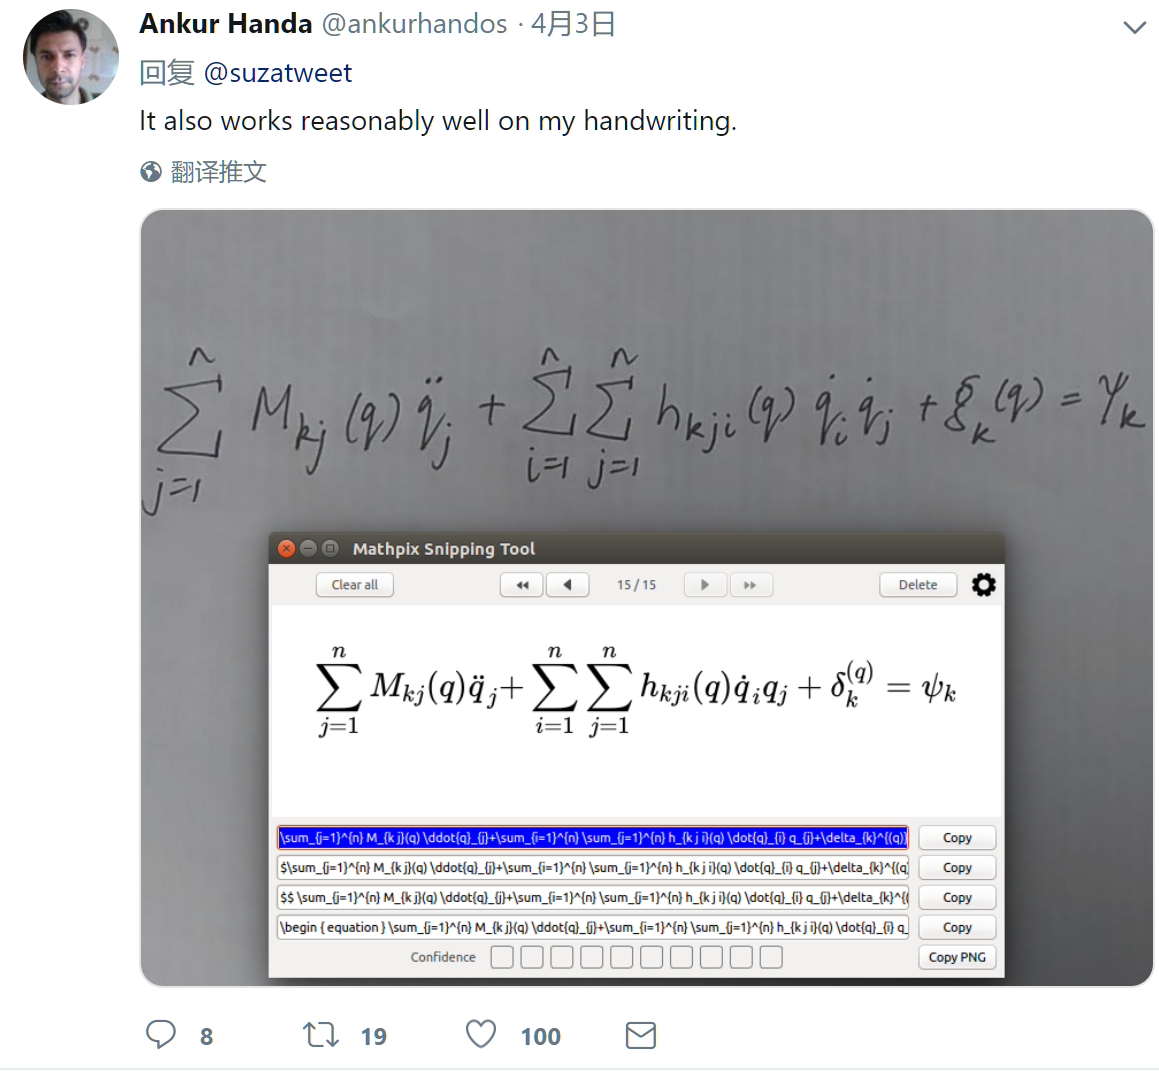 Snip' Converts Math Screenshots Into LaTeX - SyncedReview